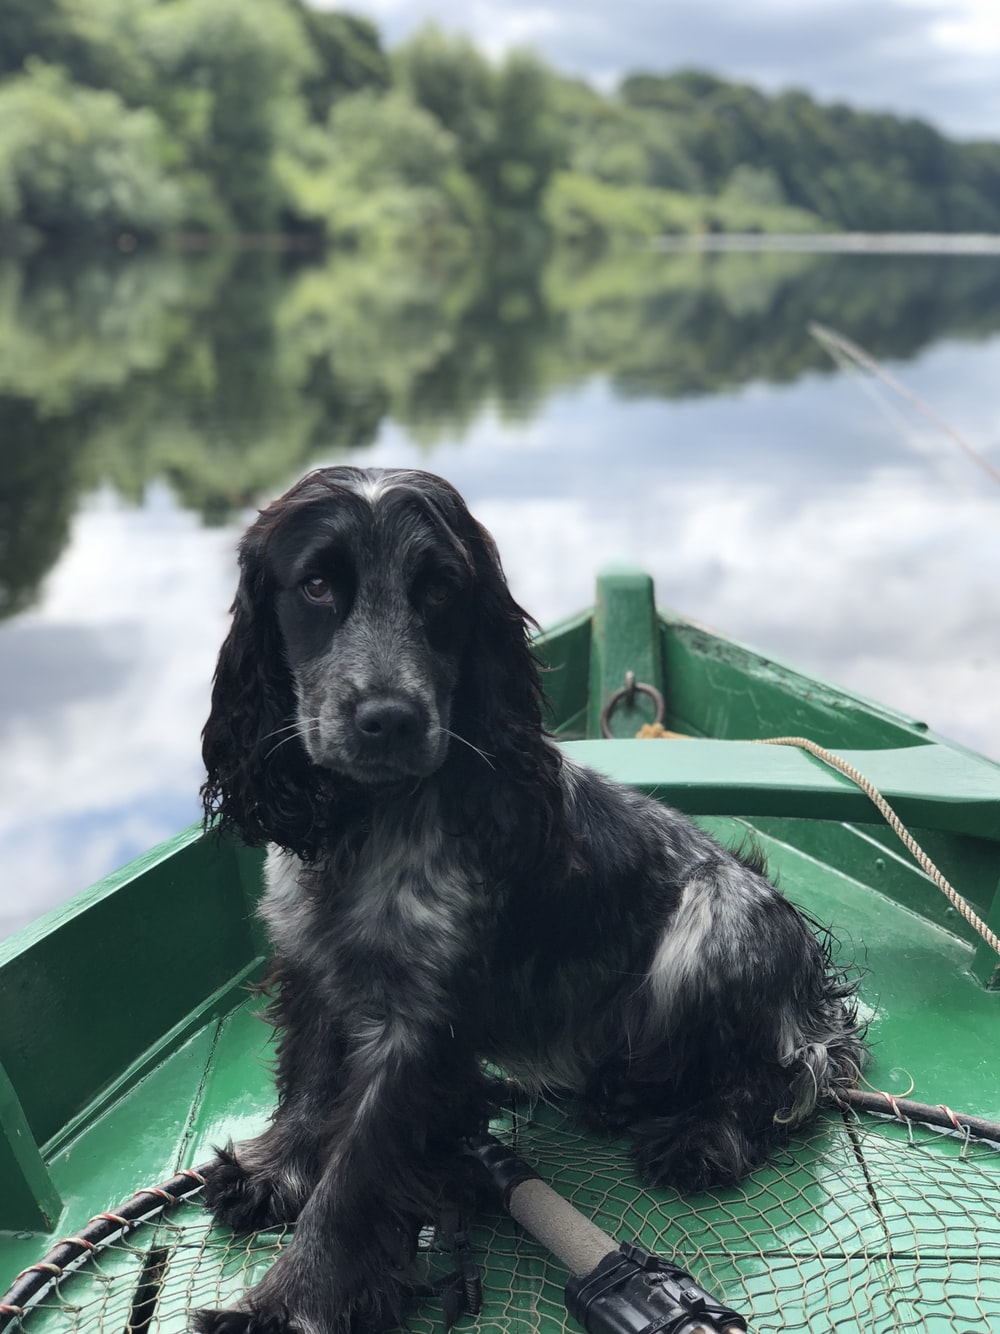 black dog sitting on boat on body of water